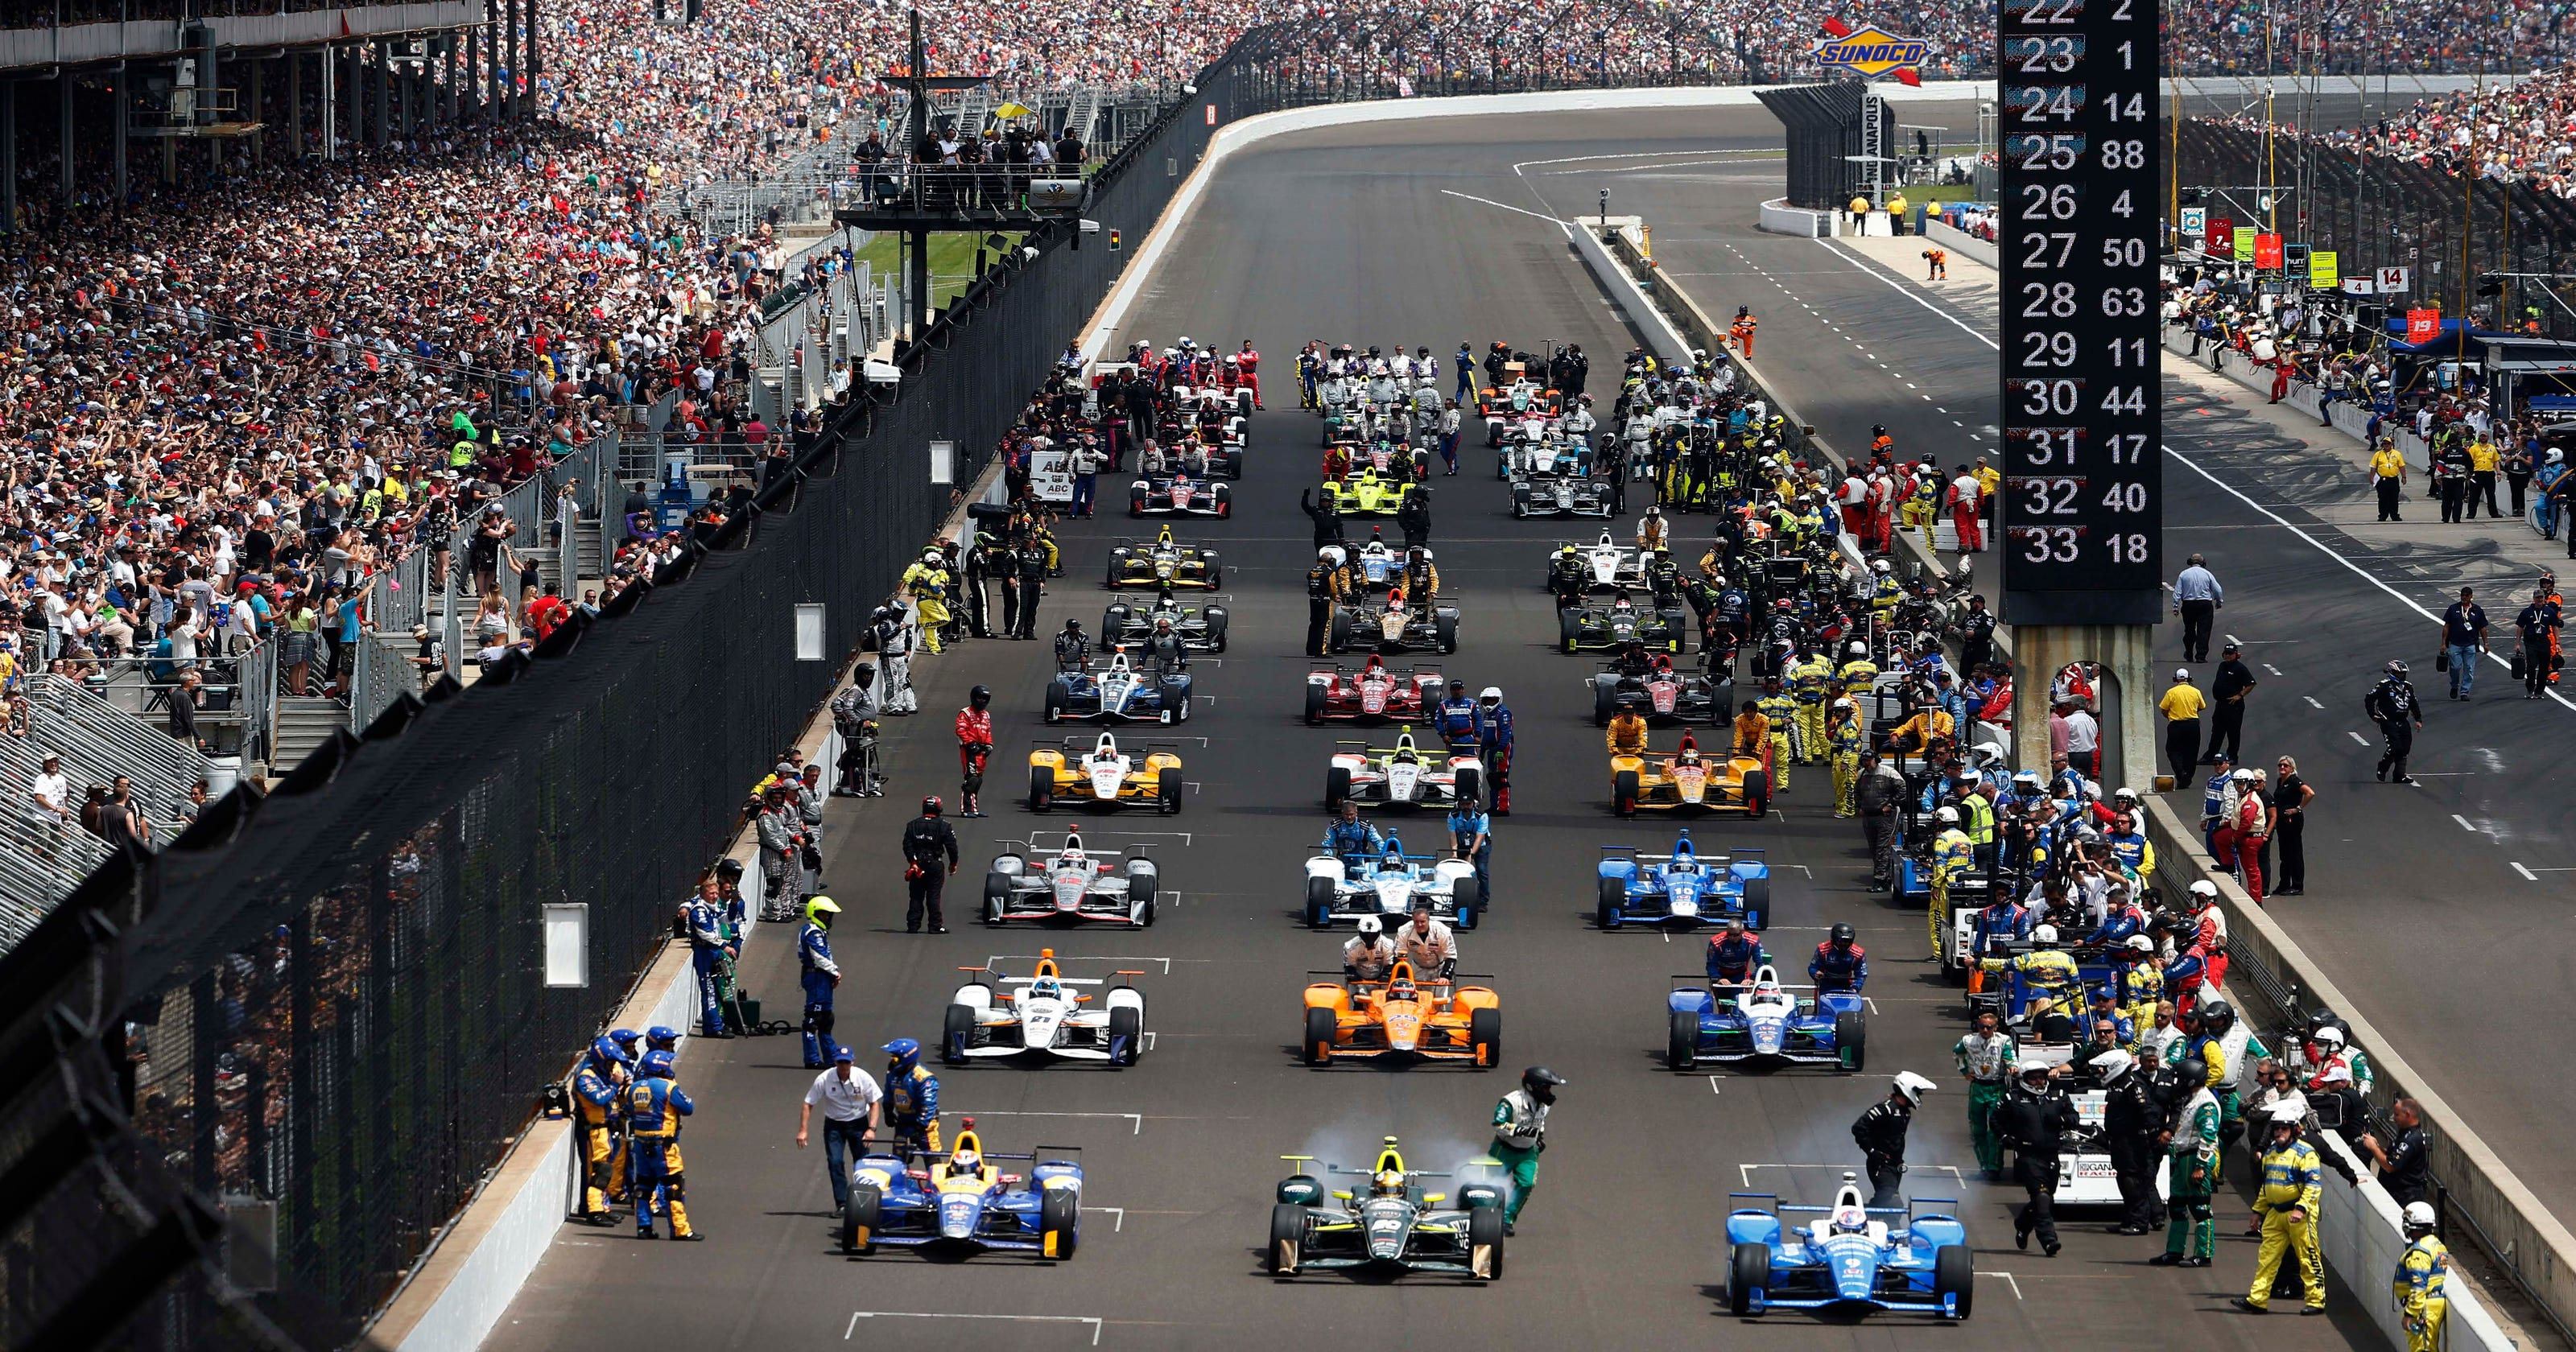 How Many Laps In Indy 500 >> Indy 500 2018 Start Time Lineup Tv Channel More For 102nd Race